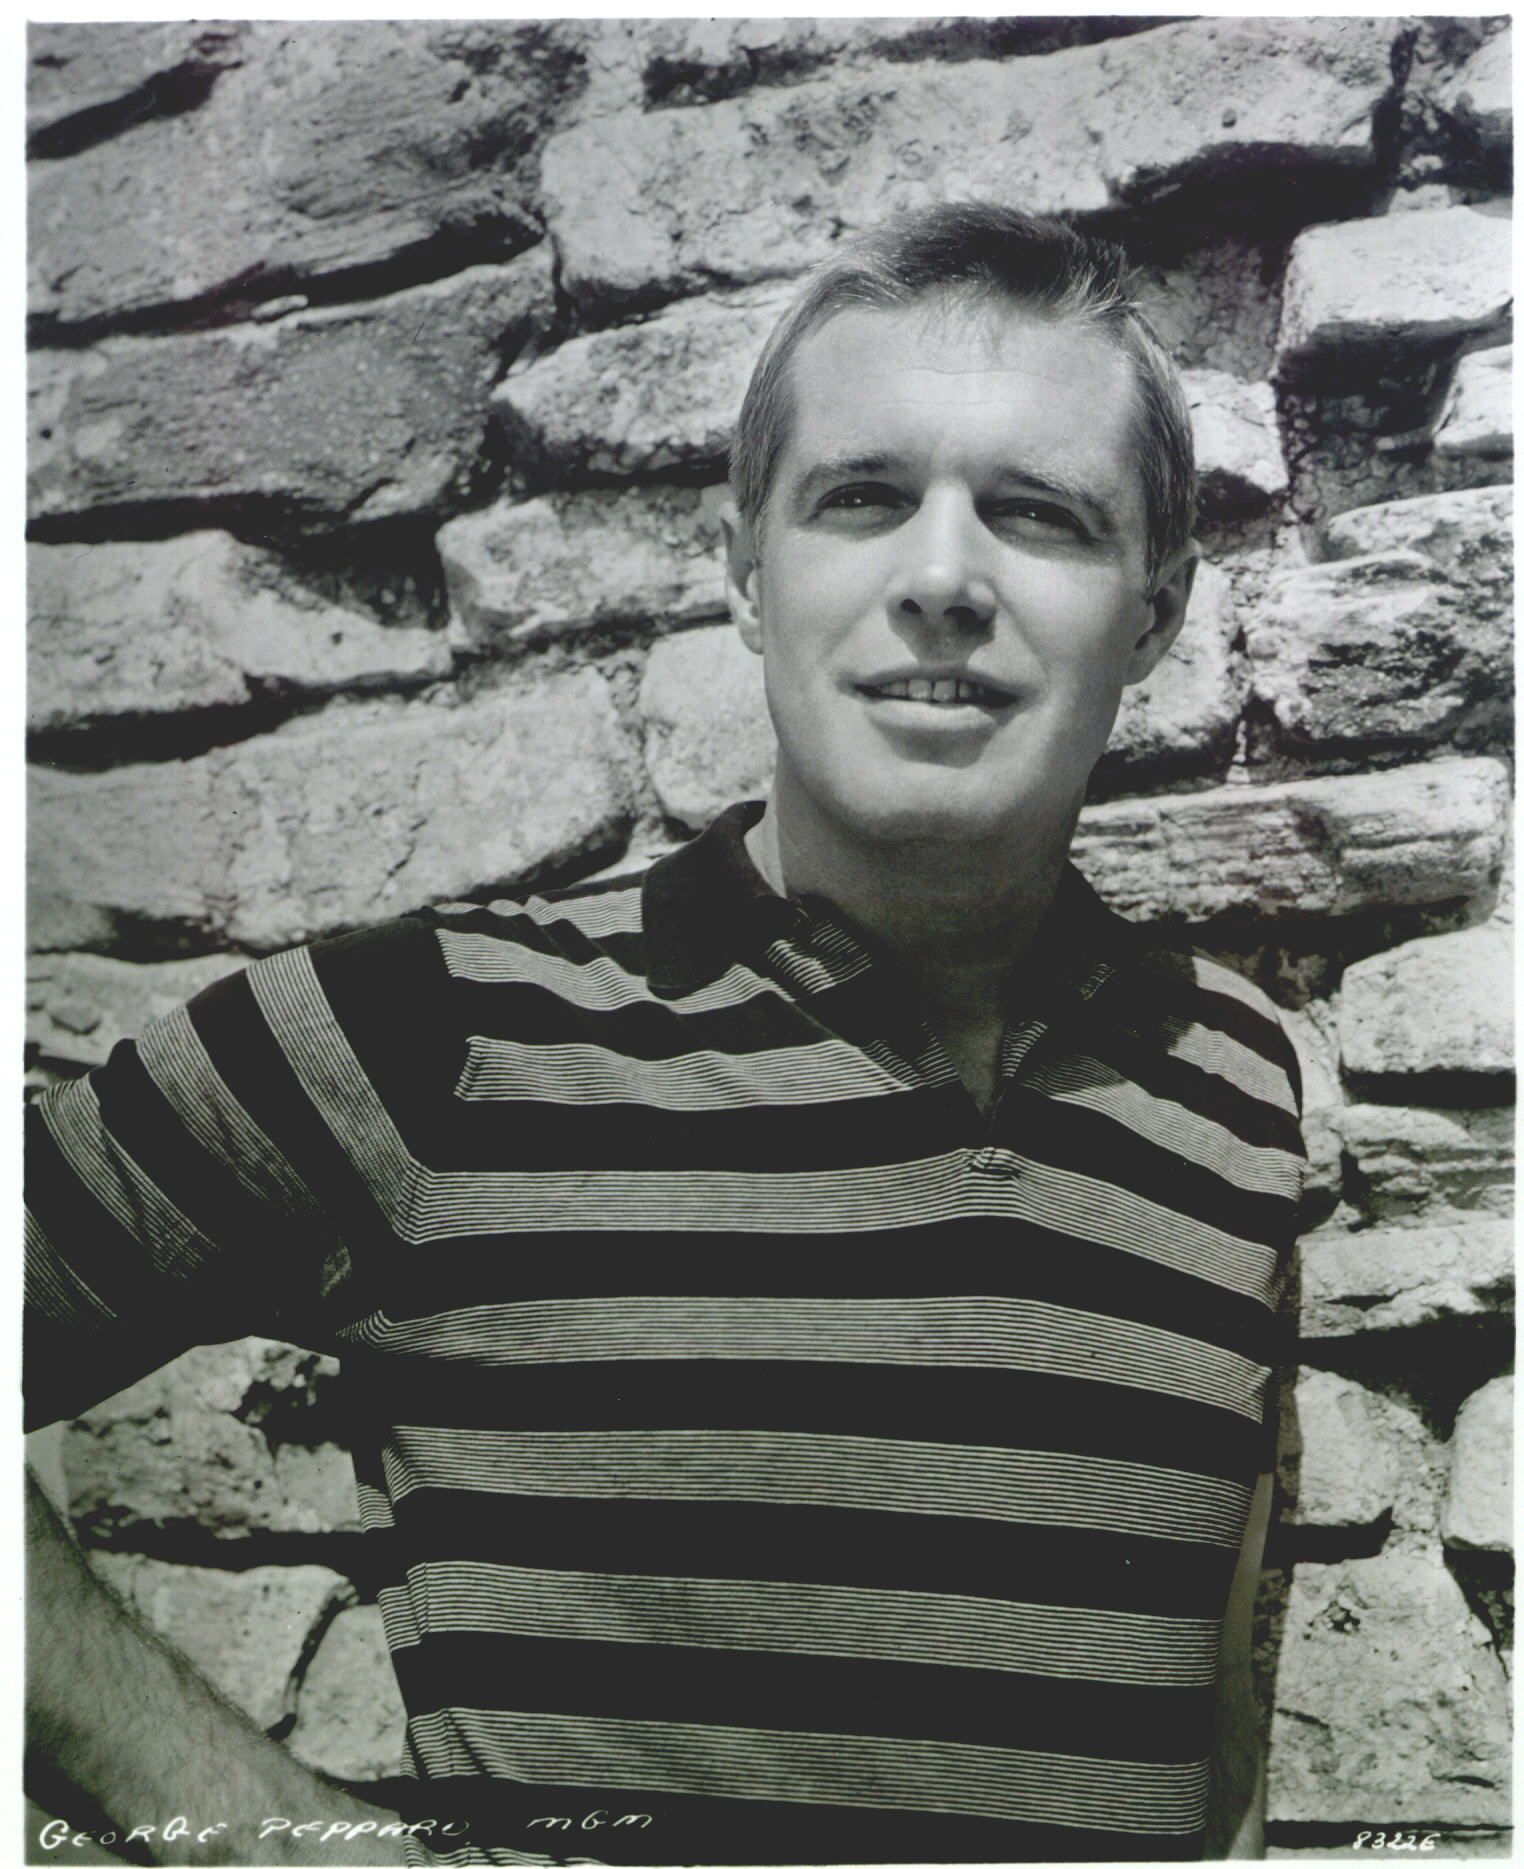 1000+ images about George Peppard (1928-1994) on Pinterest